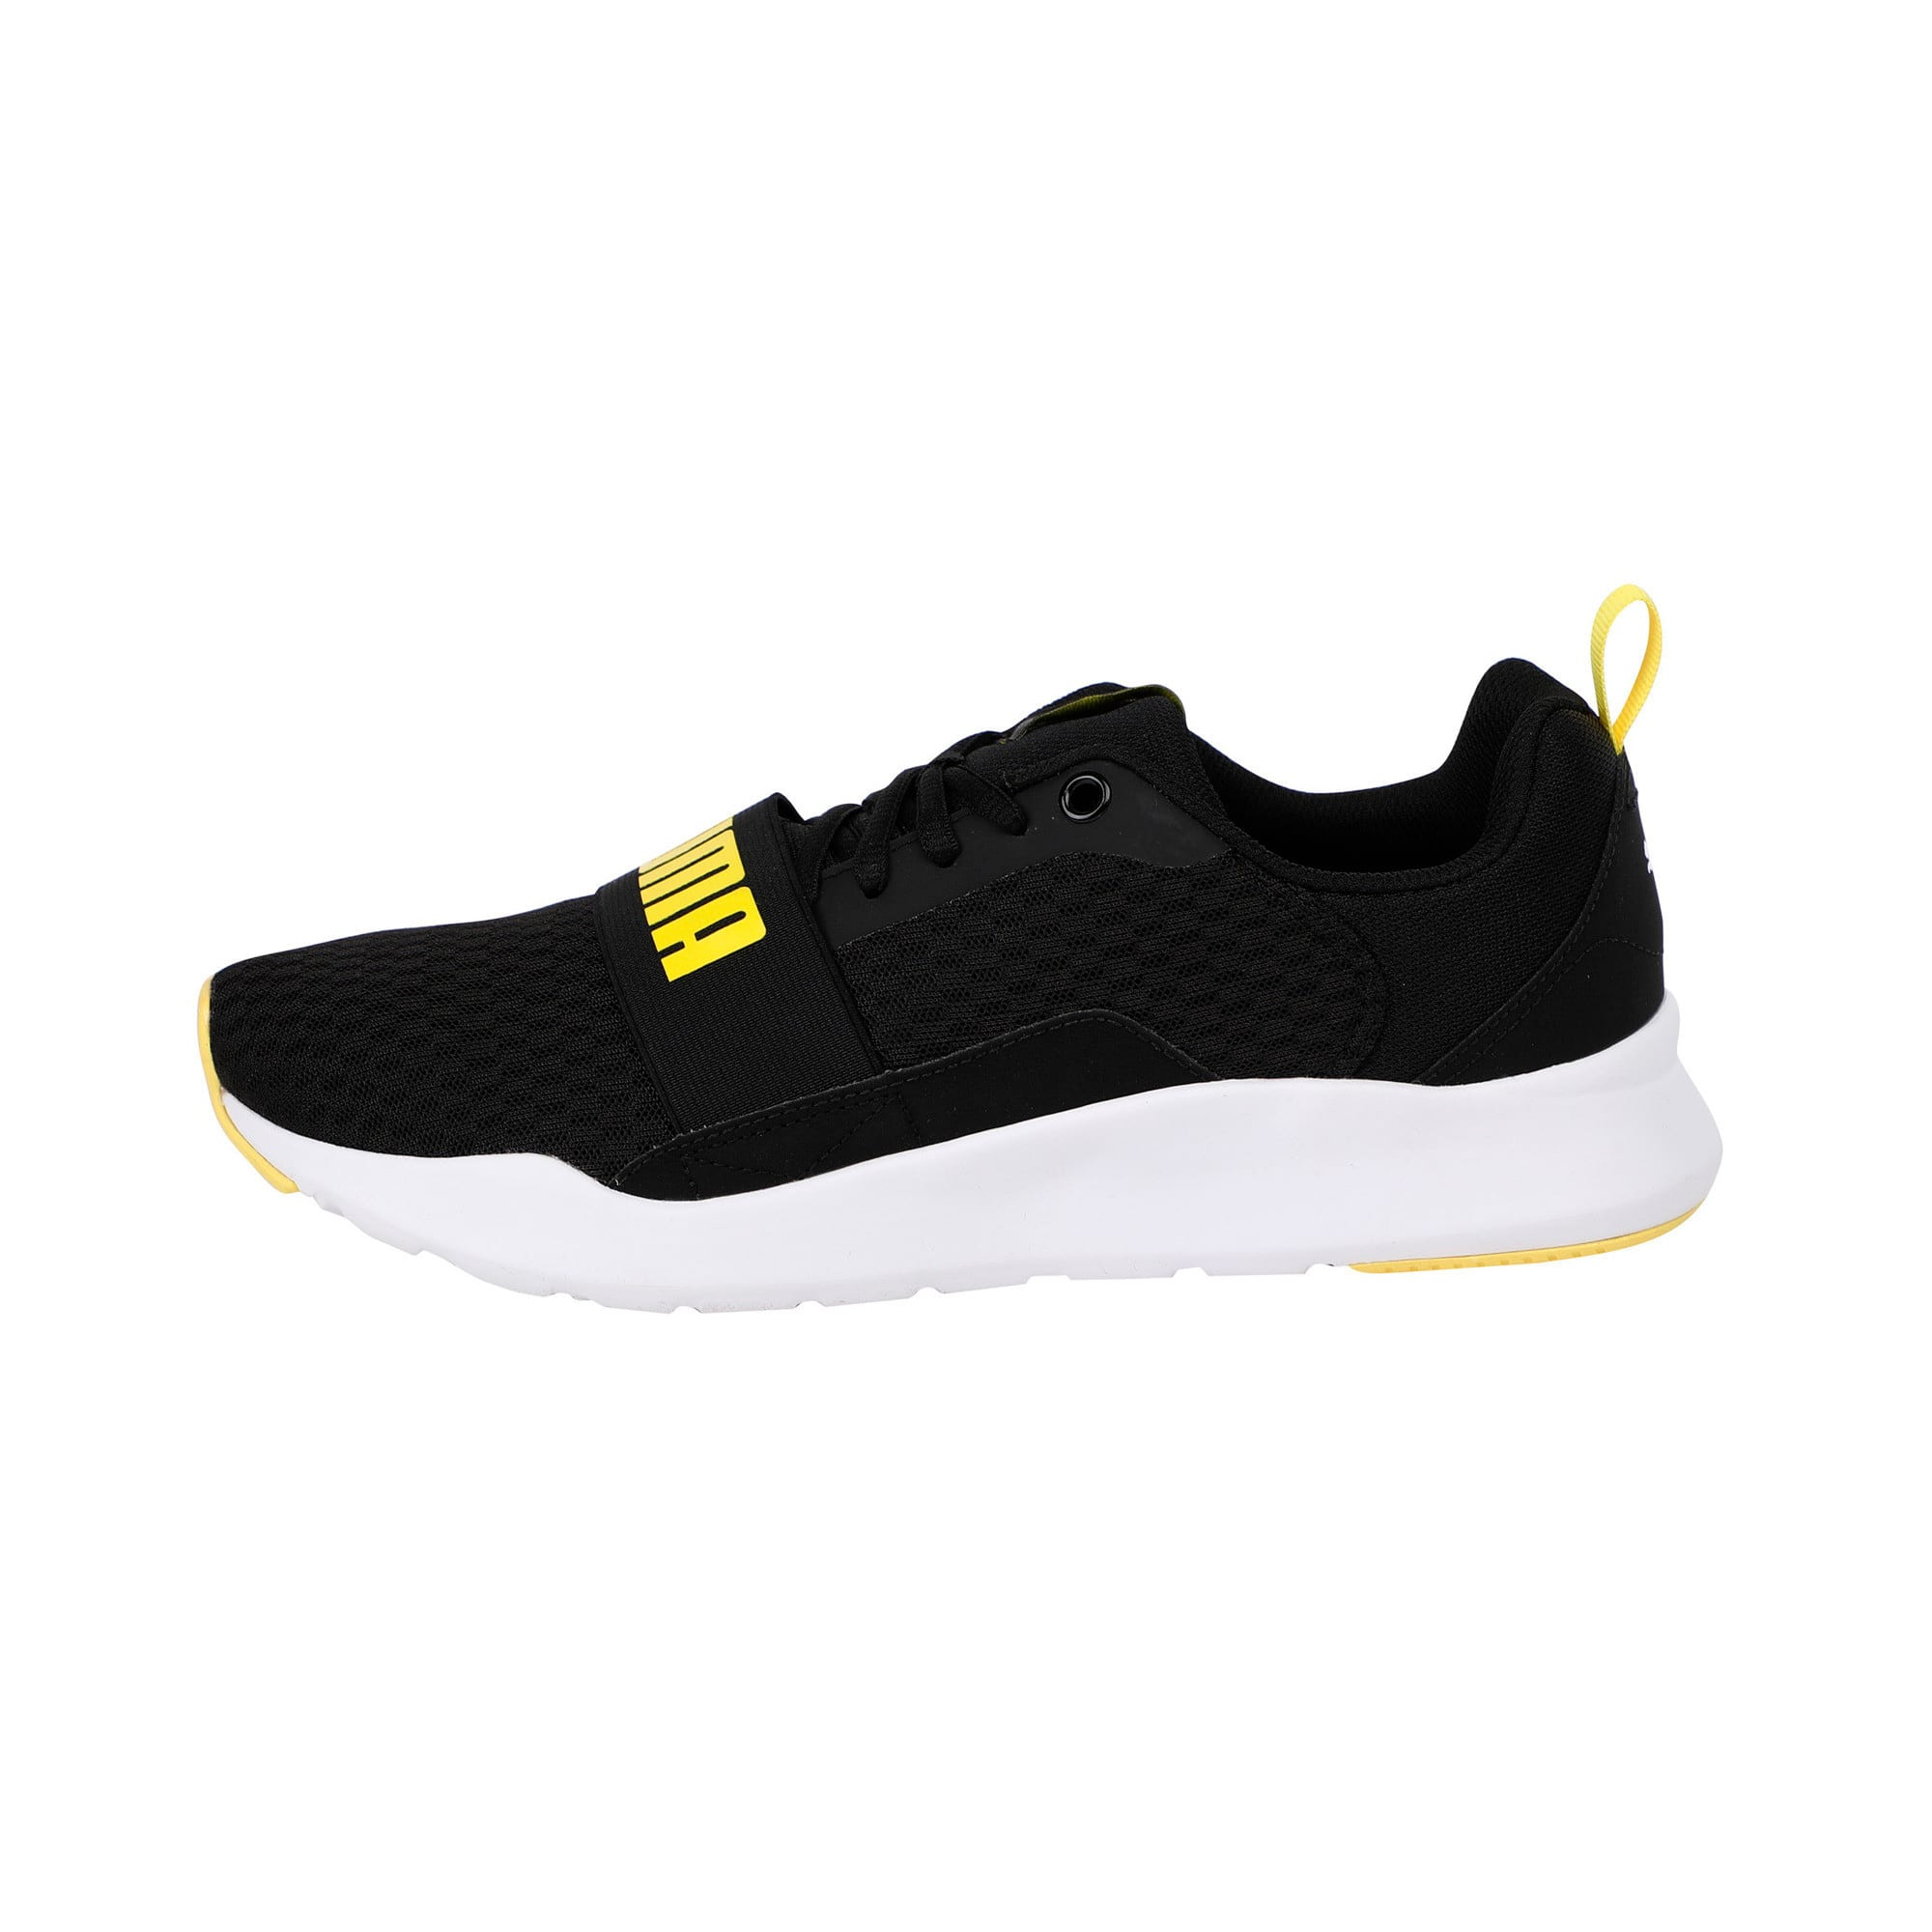 Thumbnail 1 of Wired Trainers, Puma Black-Blazing Yellow, medium-IND